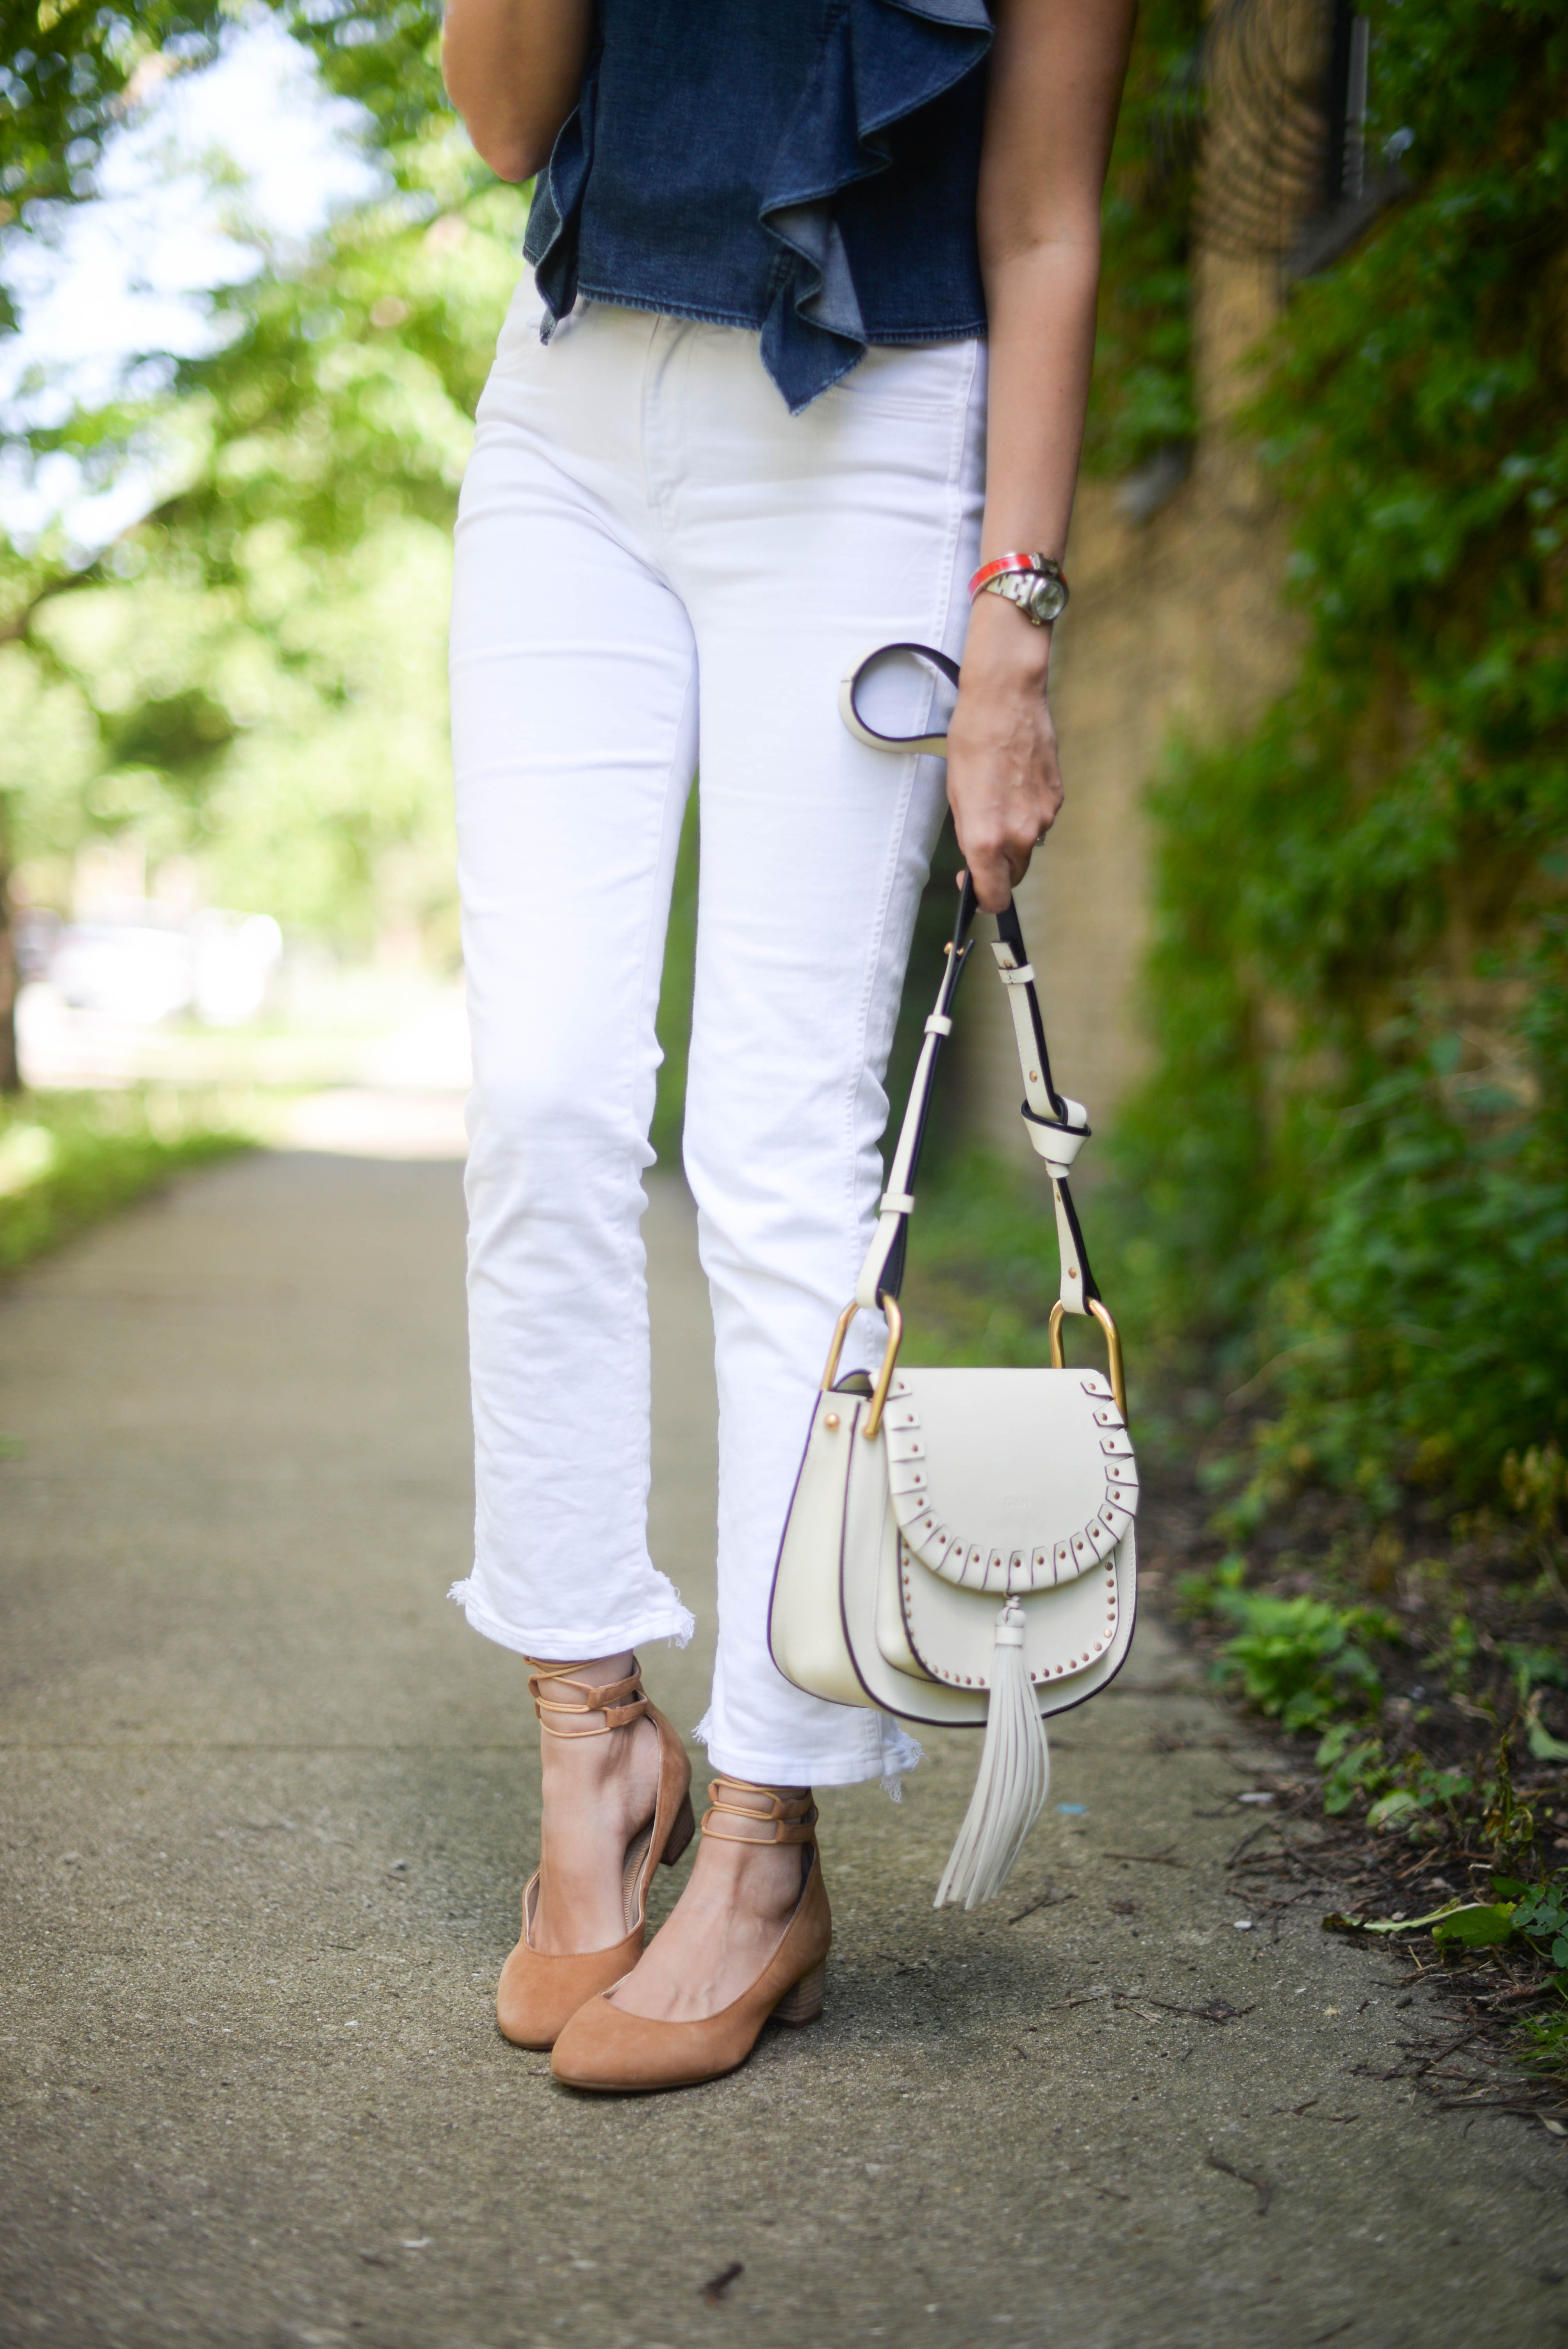 hushpuppies shoes chloe bag white jeans